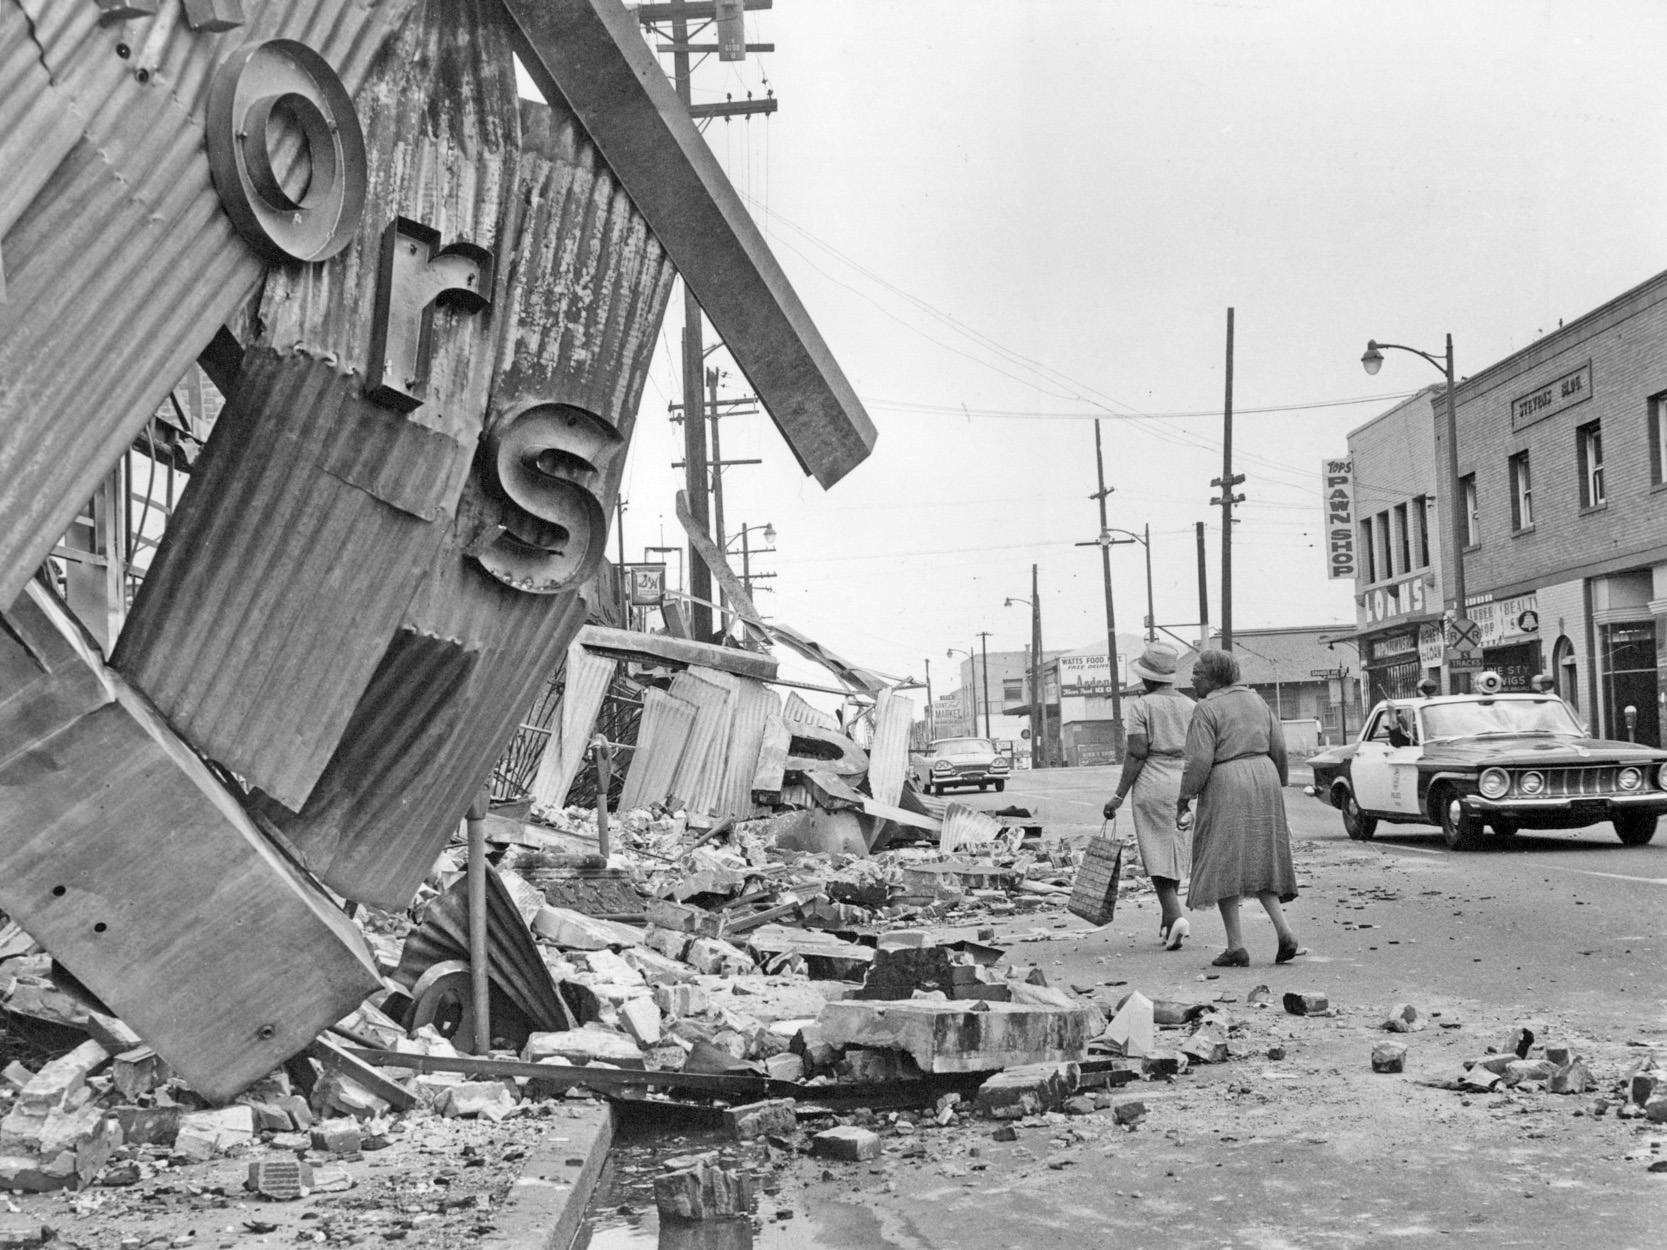 The aftermath of the Watts Riots, August 1965. Photo: <em>Los Angeles Times</em> Staff Photographer. Copyright 2005, <em>Los Angeles Times.</em> Reprinted with Permission.